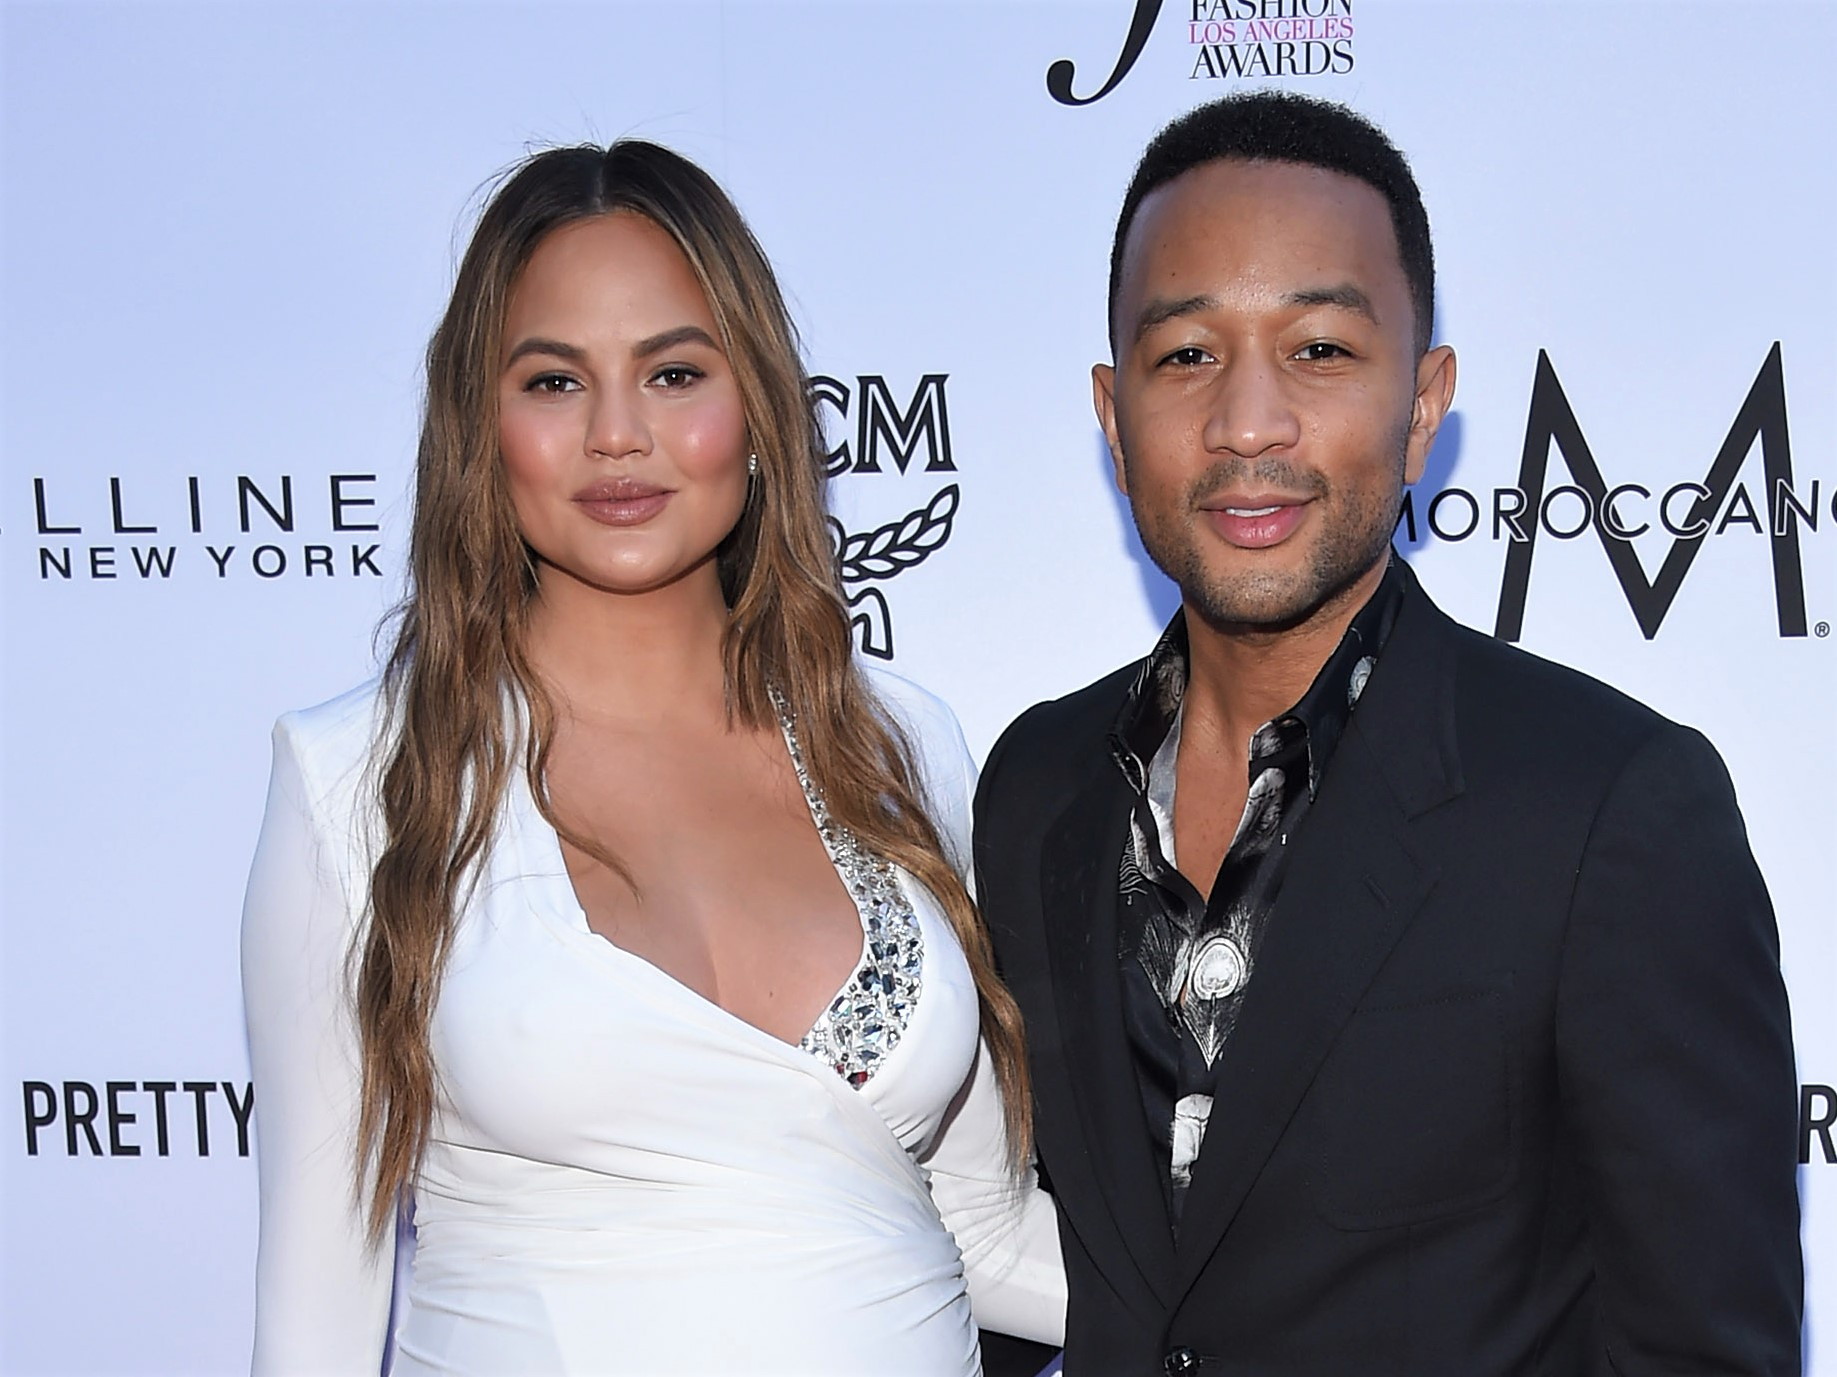 Chrissy Teigen White Dress and John Legend